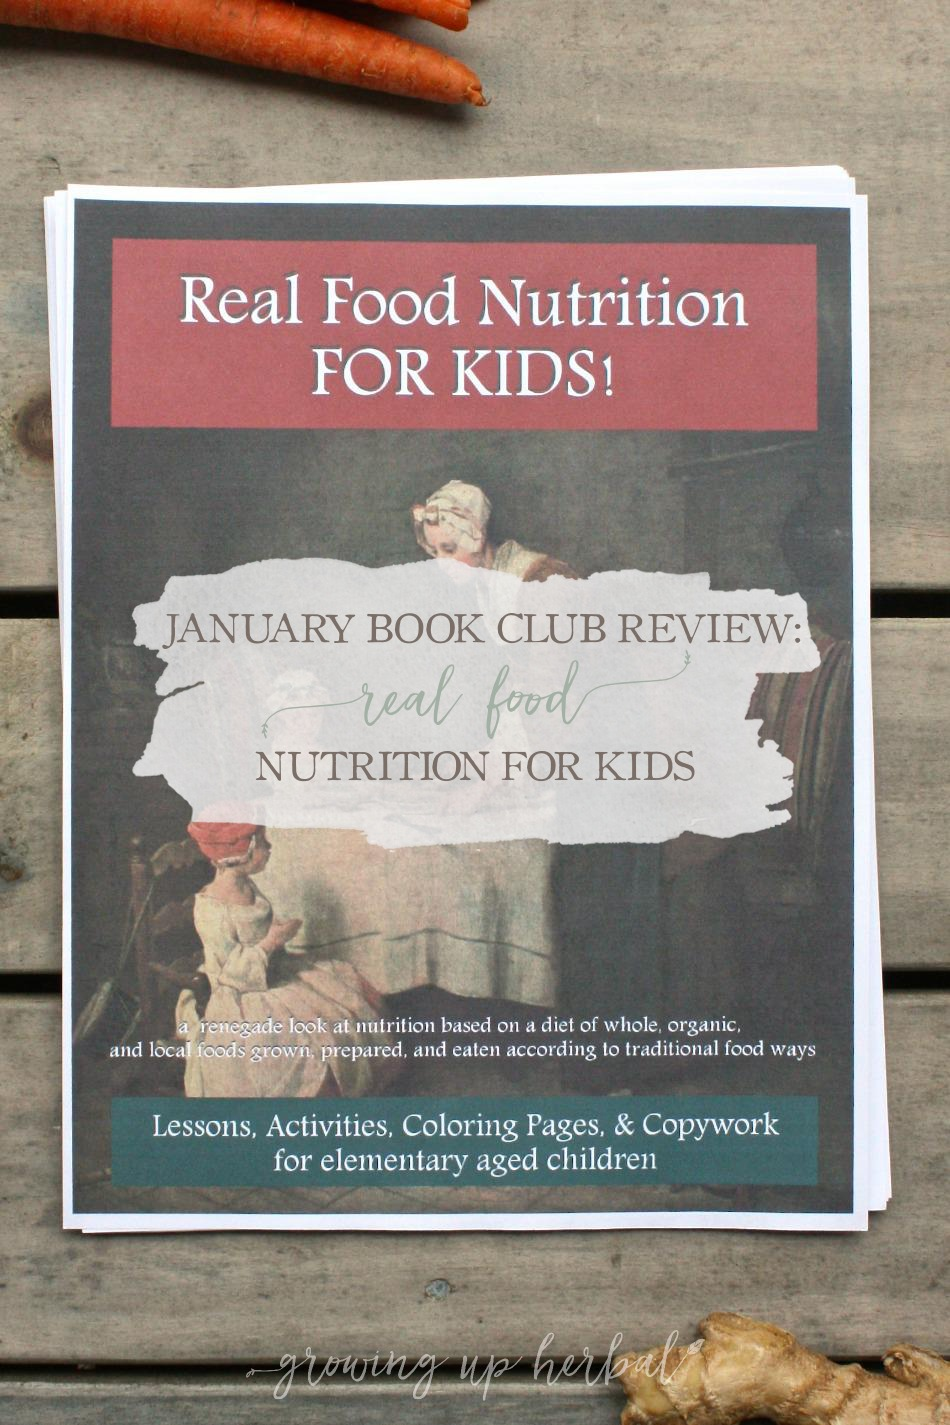 childrens nutrition coloring pages january book club review real food nutrition for kids growing up